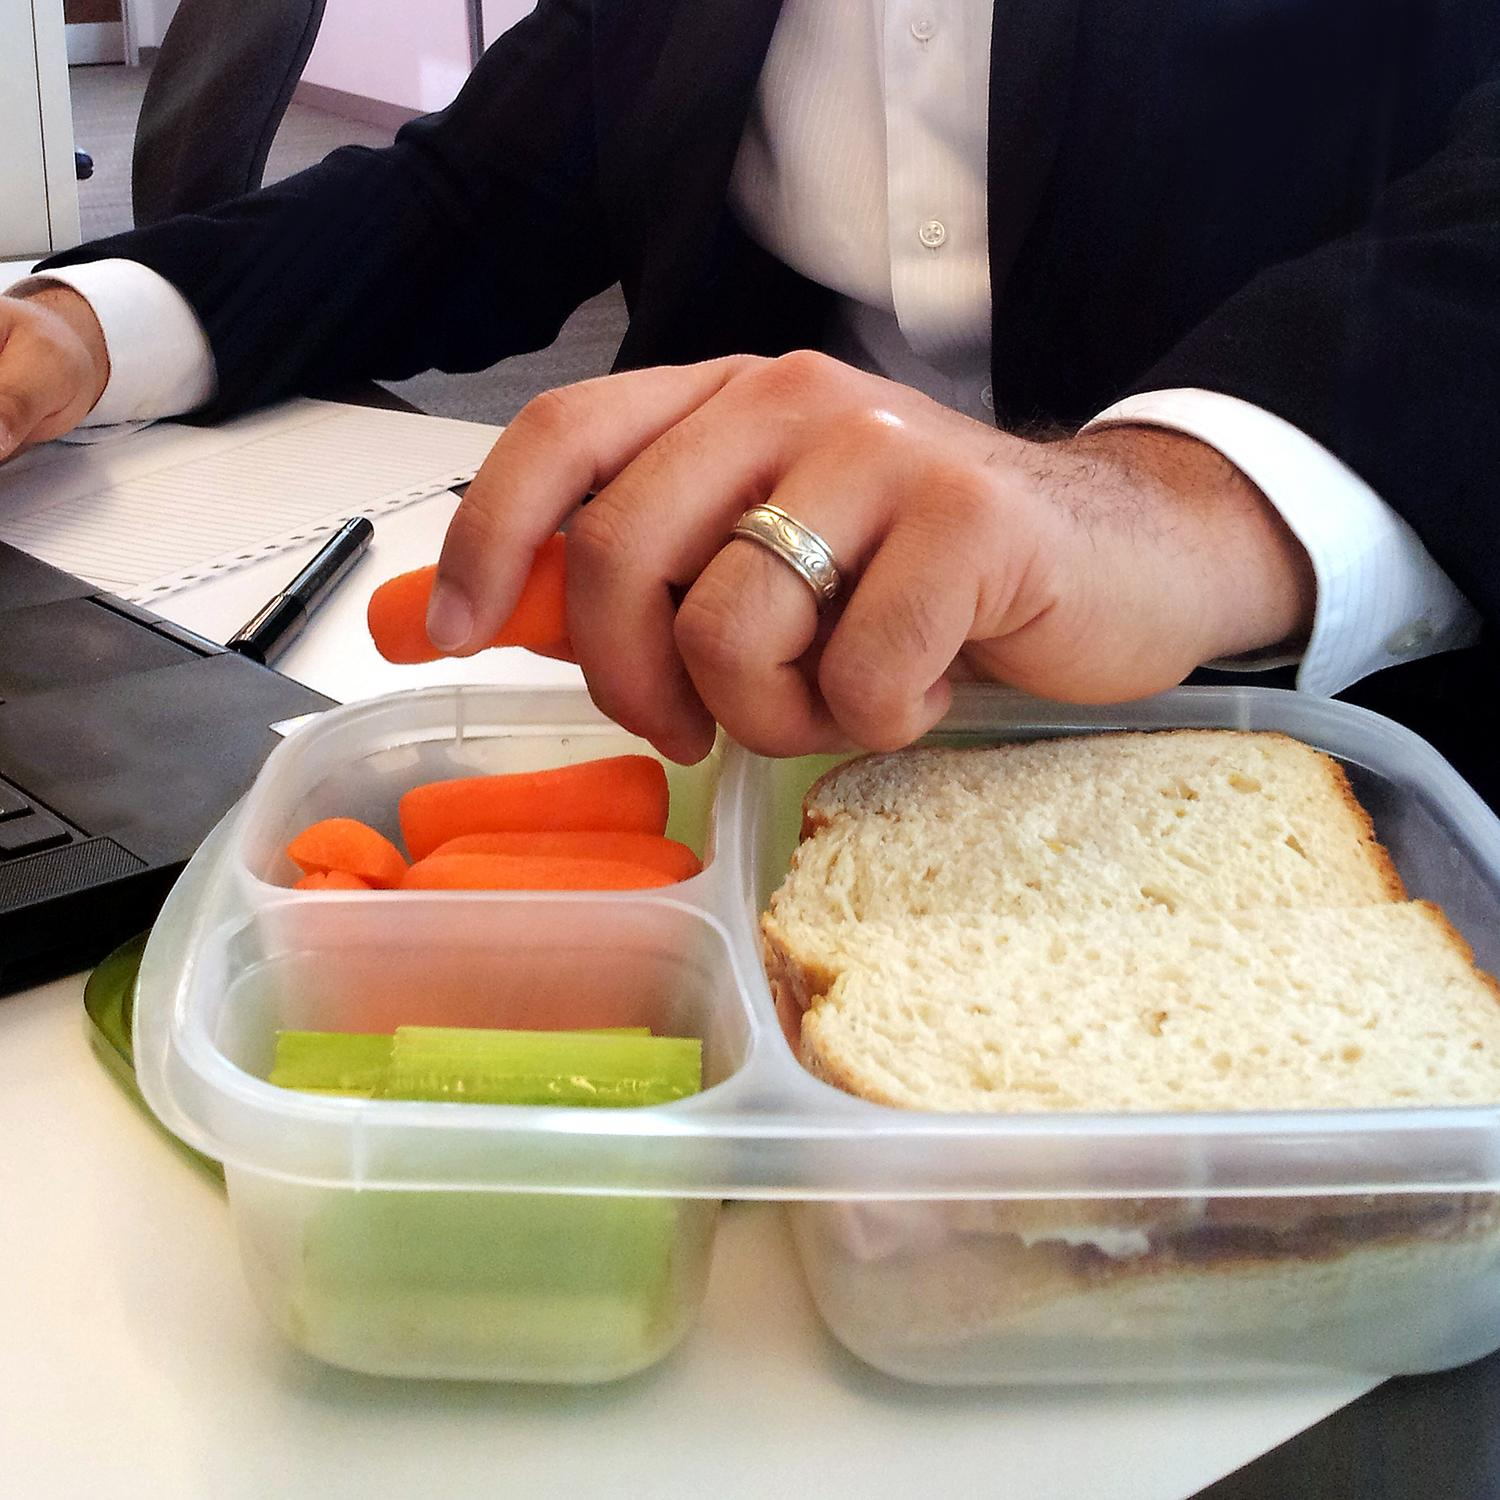 Amazon.com: EasyLunchboxes 3-Compartment Bento Lunch Box